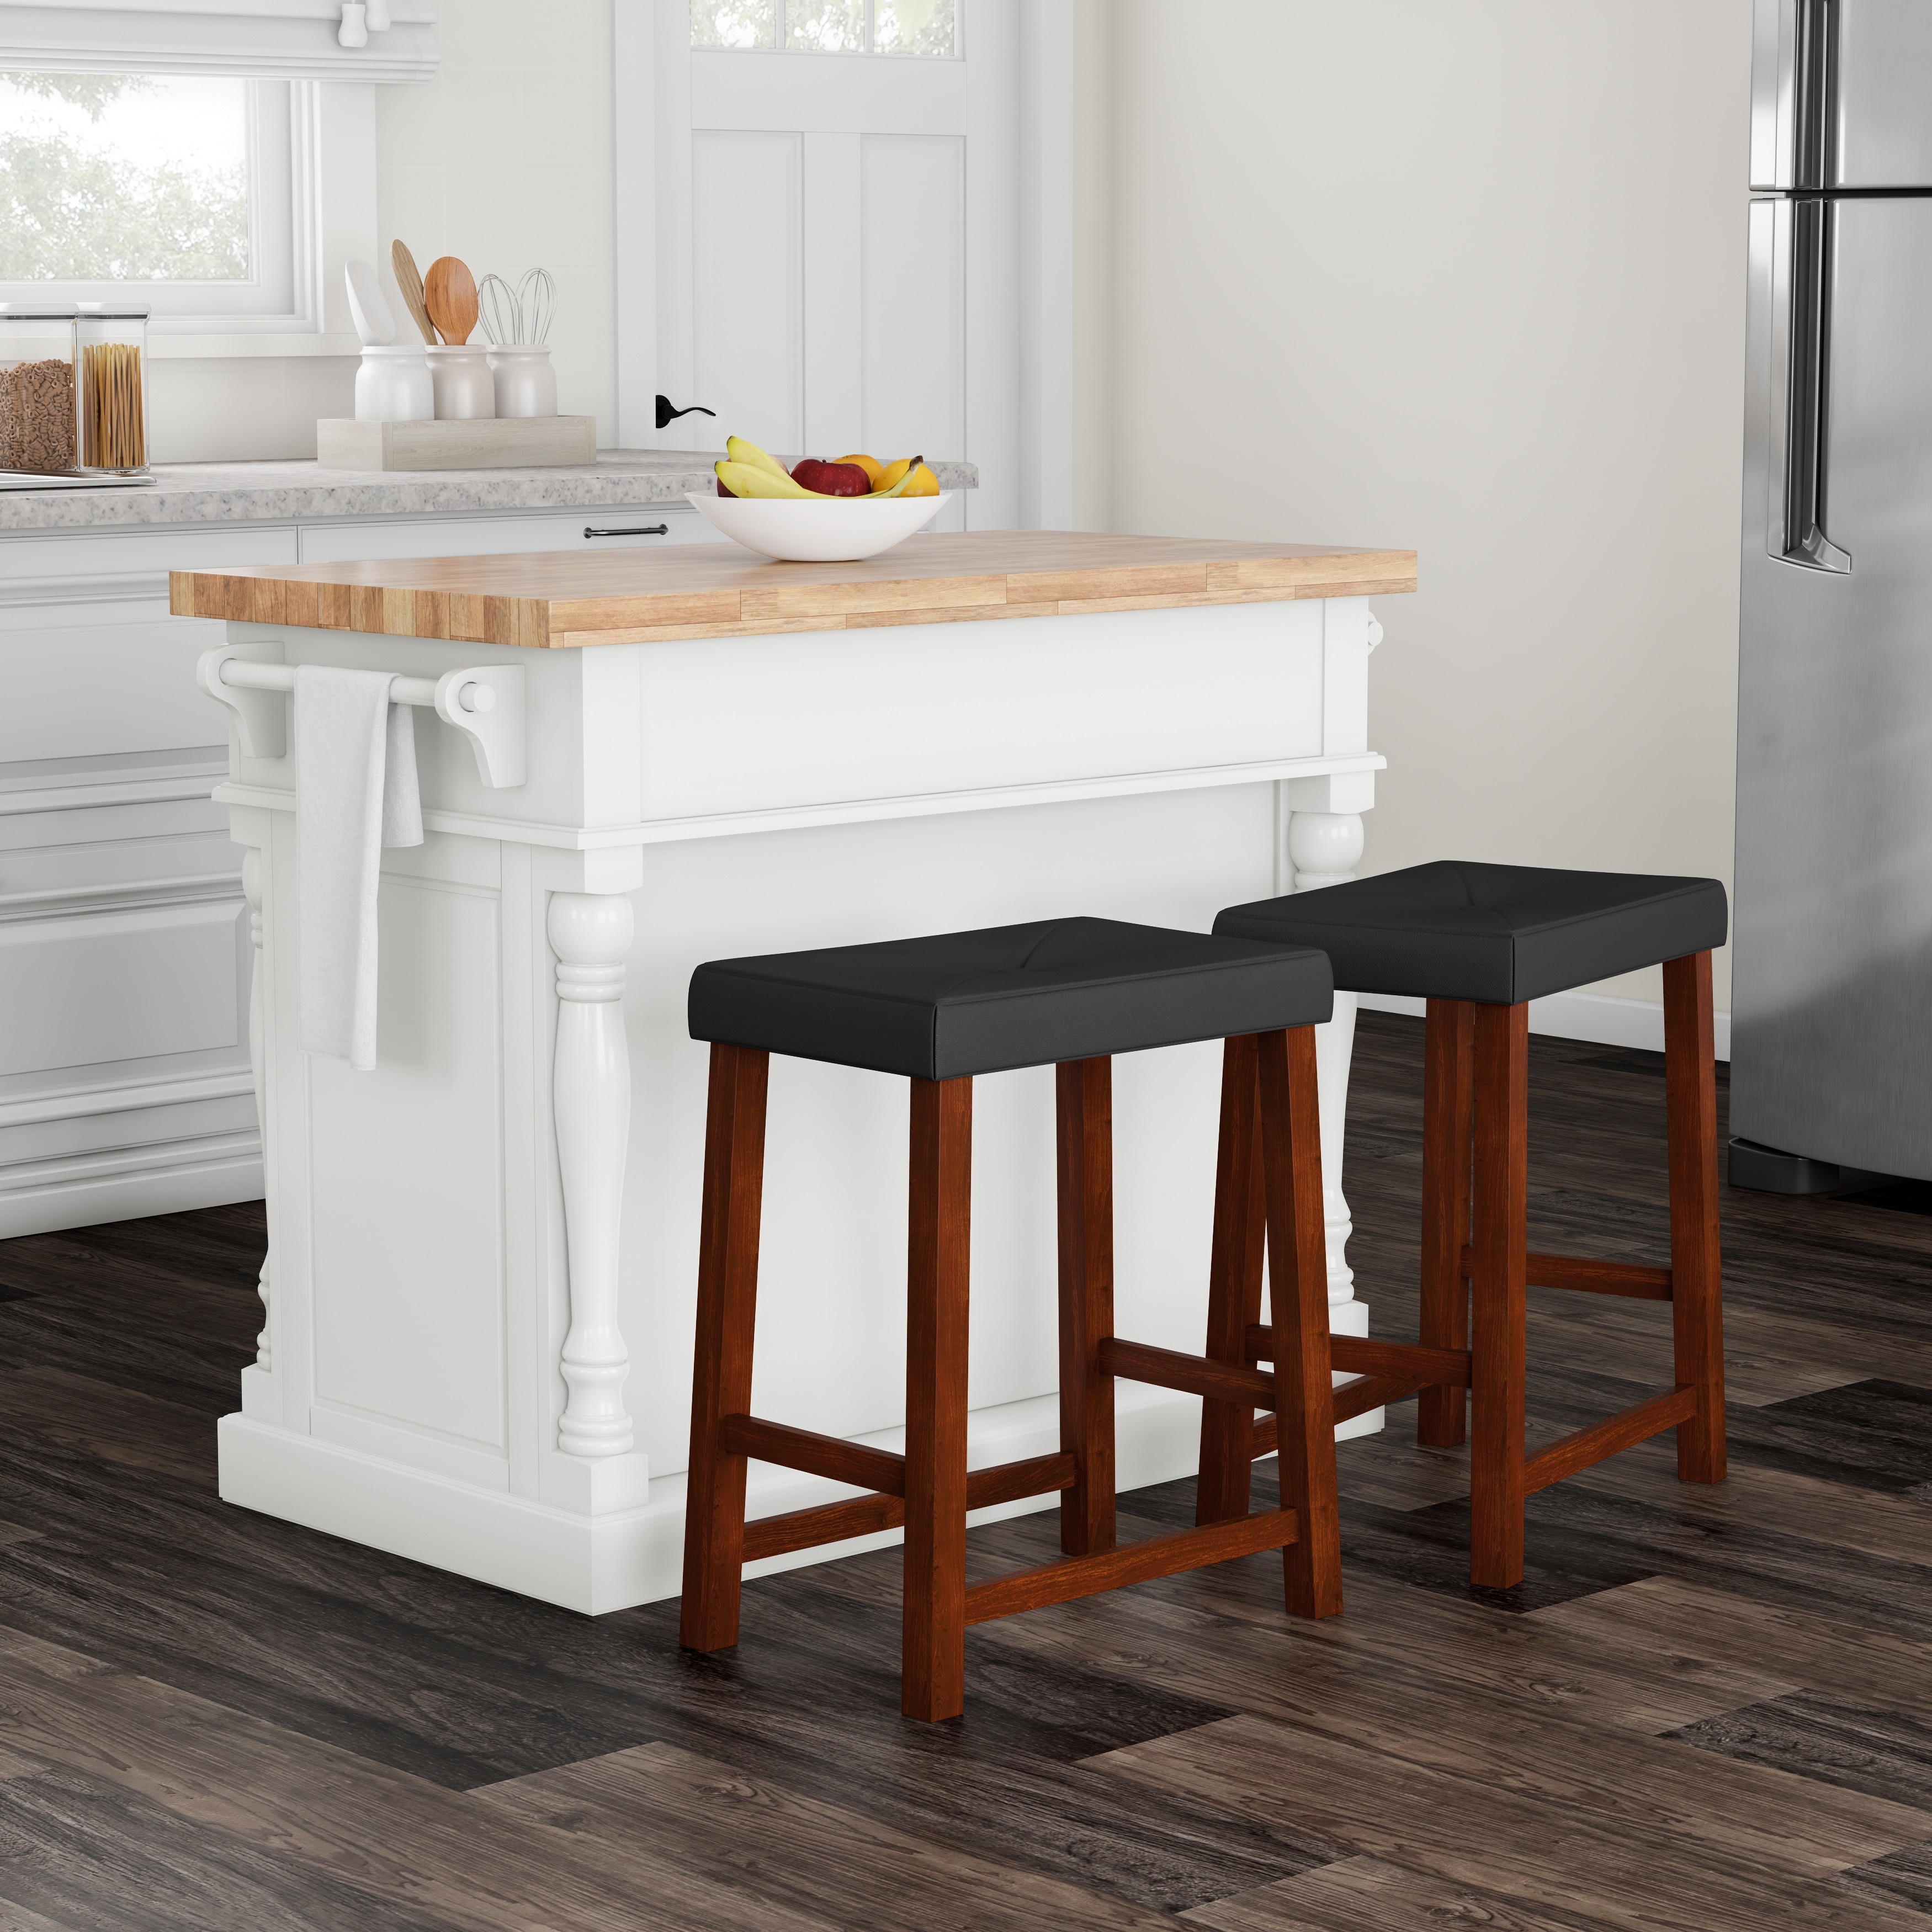 Shop gracewood hollow kenny butcher block top white kitchen island with 24 inch black upholstered saddle stools free shipping today overstock com